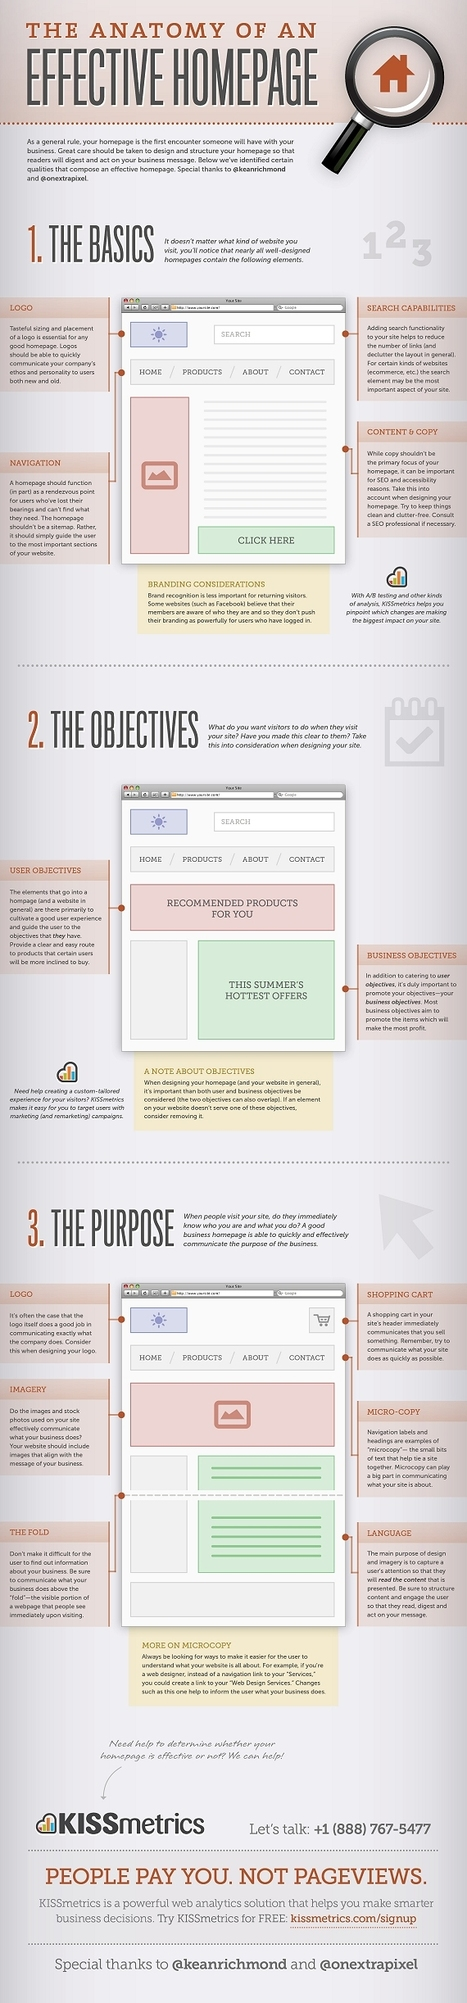 Anatomy of an Effective Homepage - SEO | Digital & Mobile Marketing Toolkit | Scoop.it